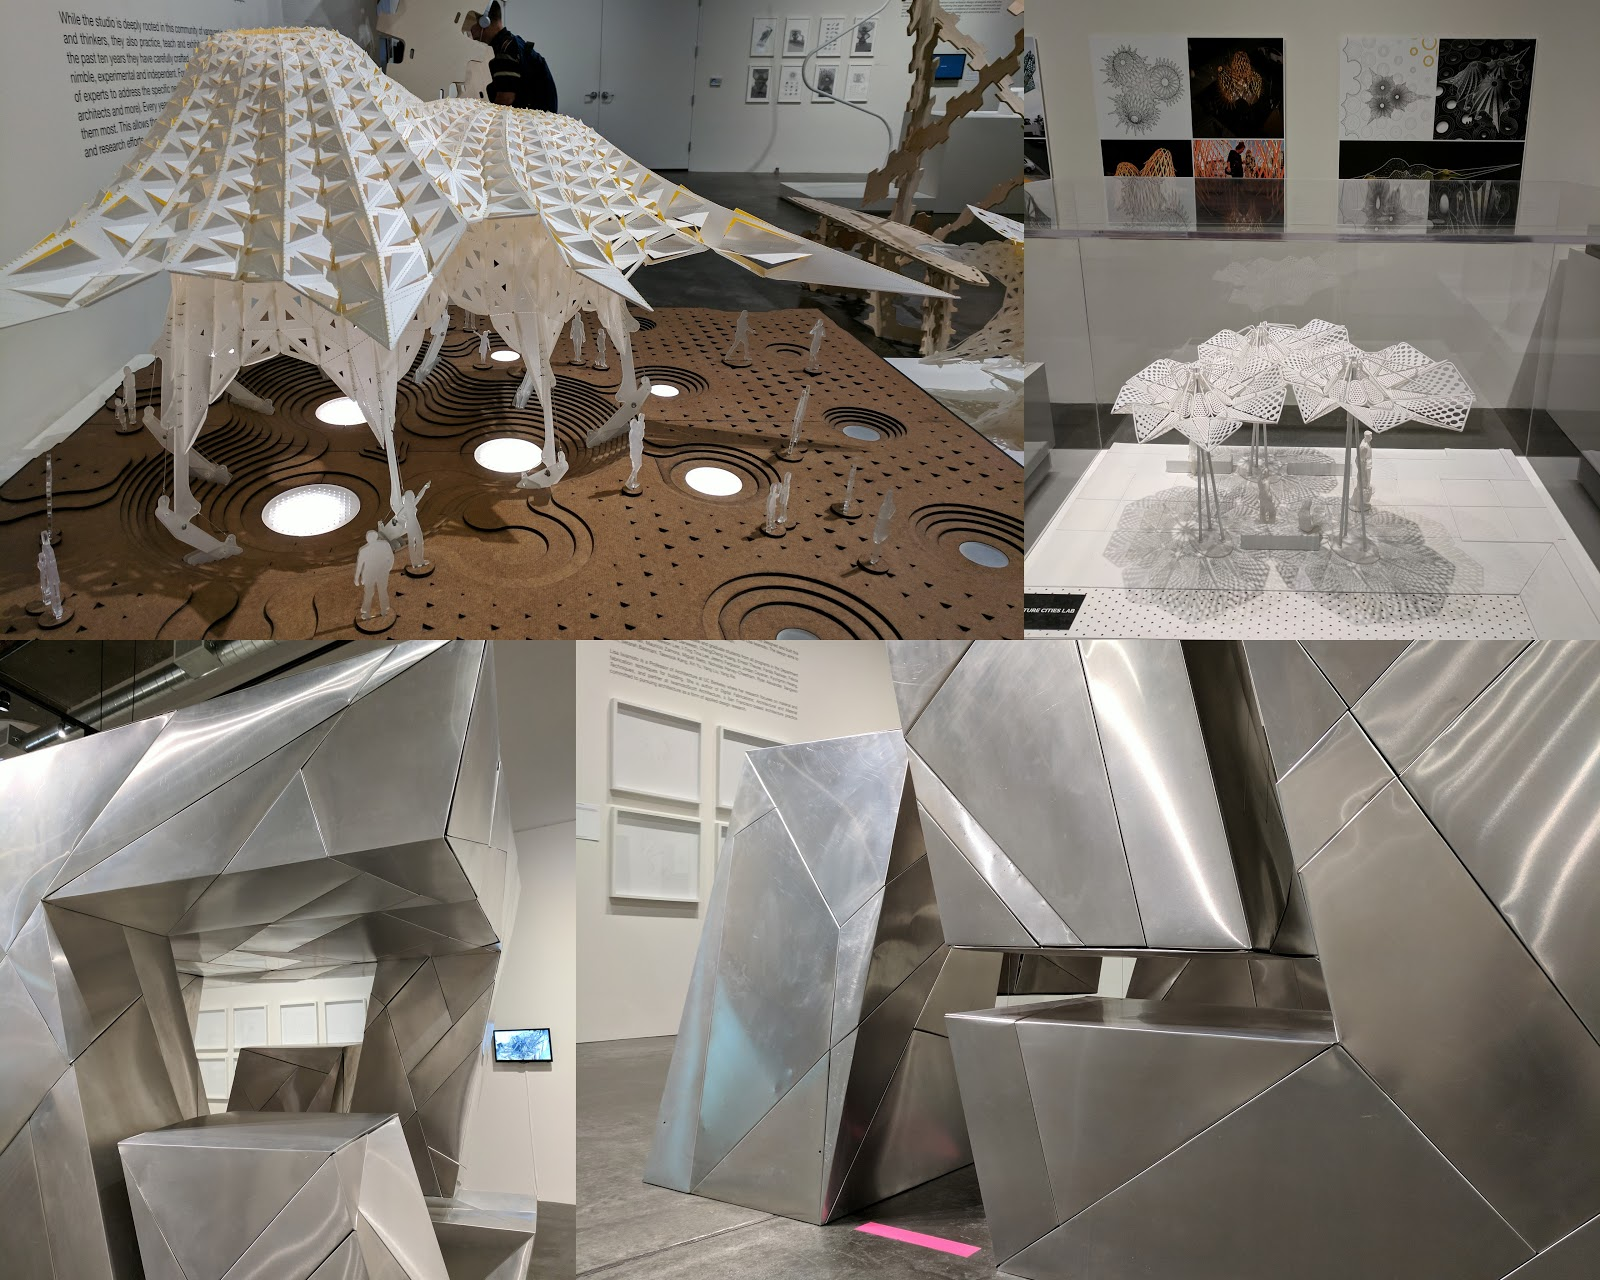 Clockwise from top left: Future Cities Lab (x2), Iwamoto Scott Architecture, floating sculpture detail and overall view